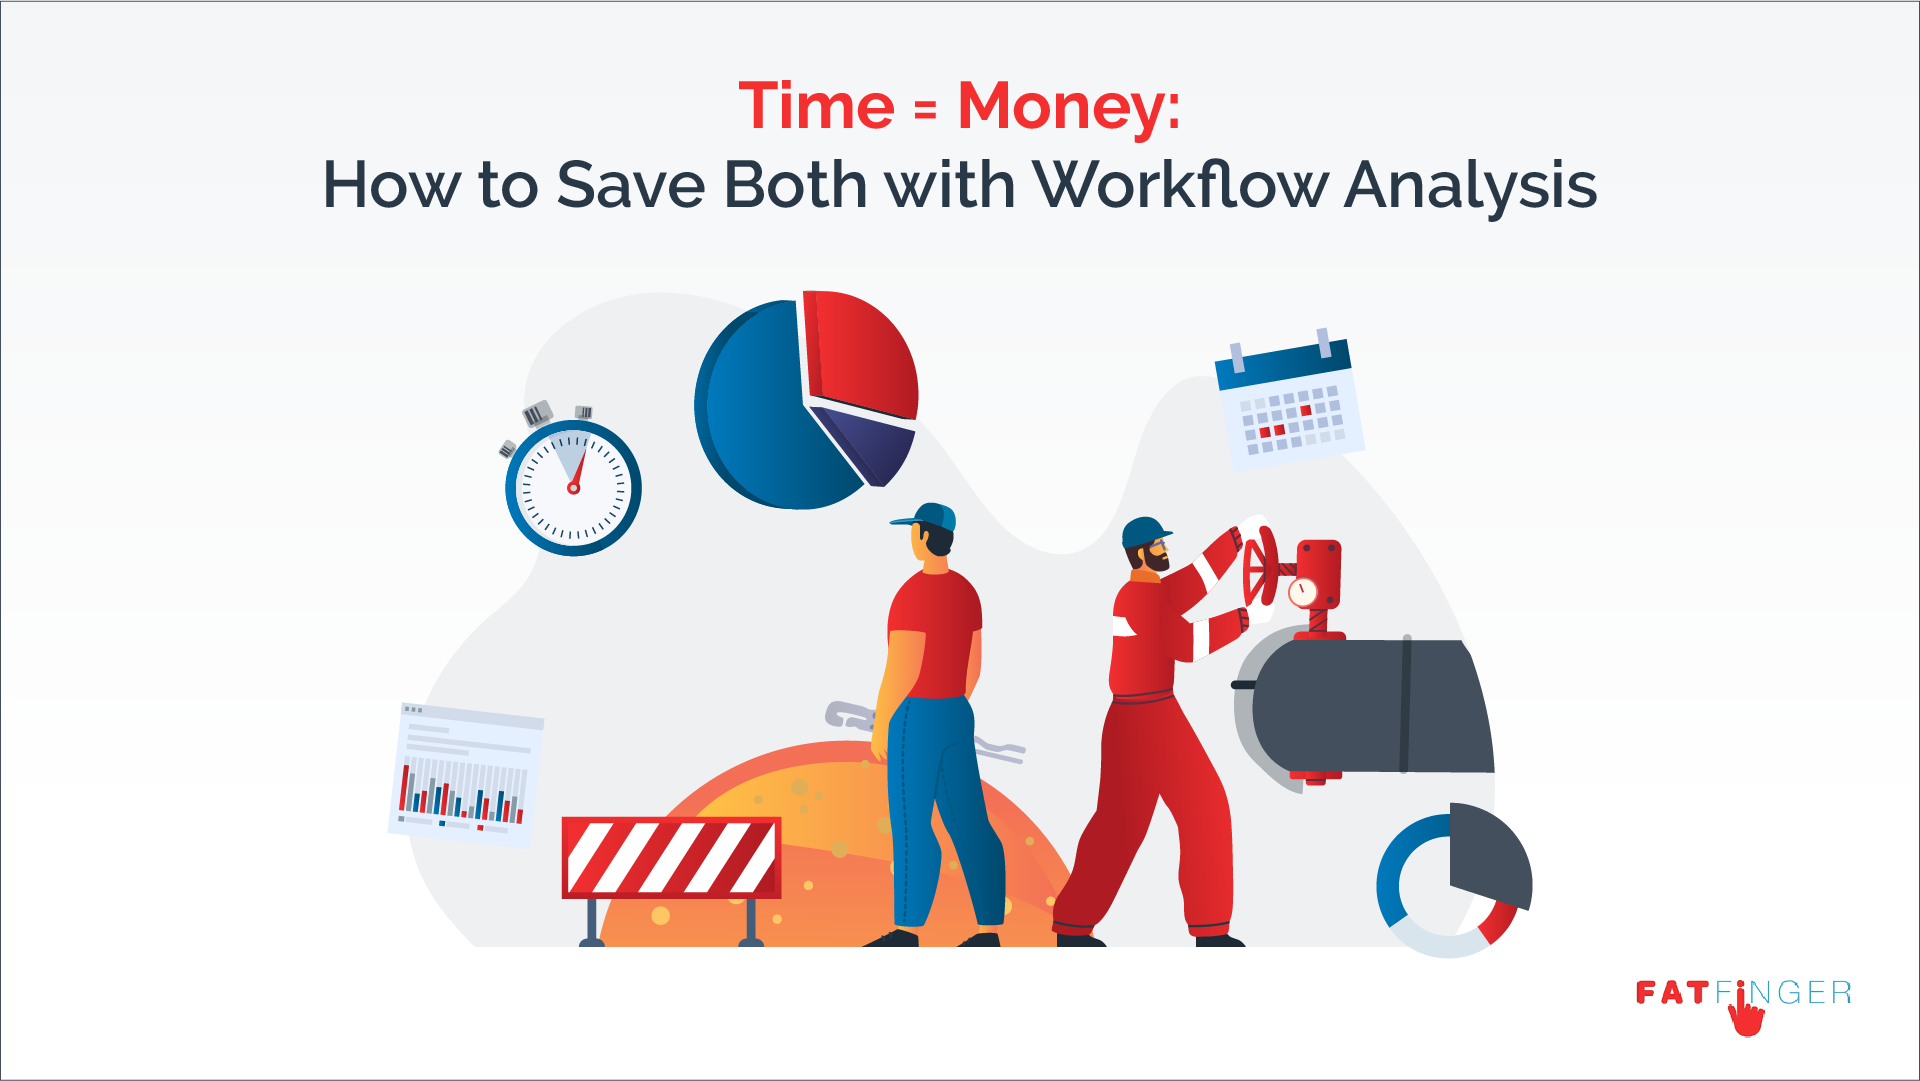 Save time and money with Workflow Analysis